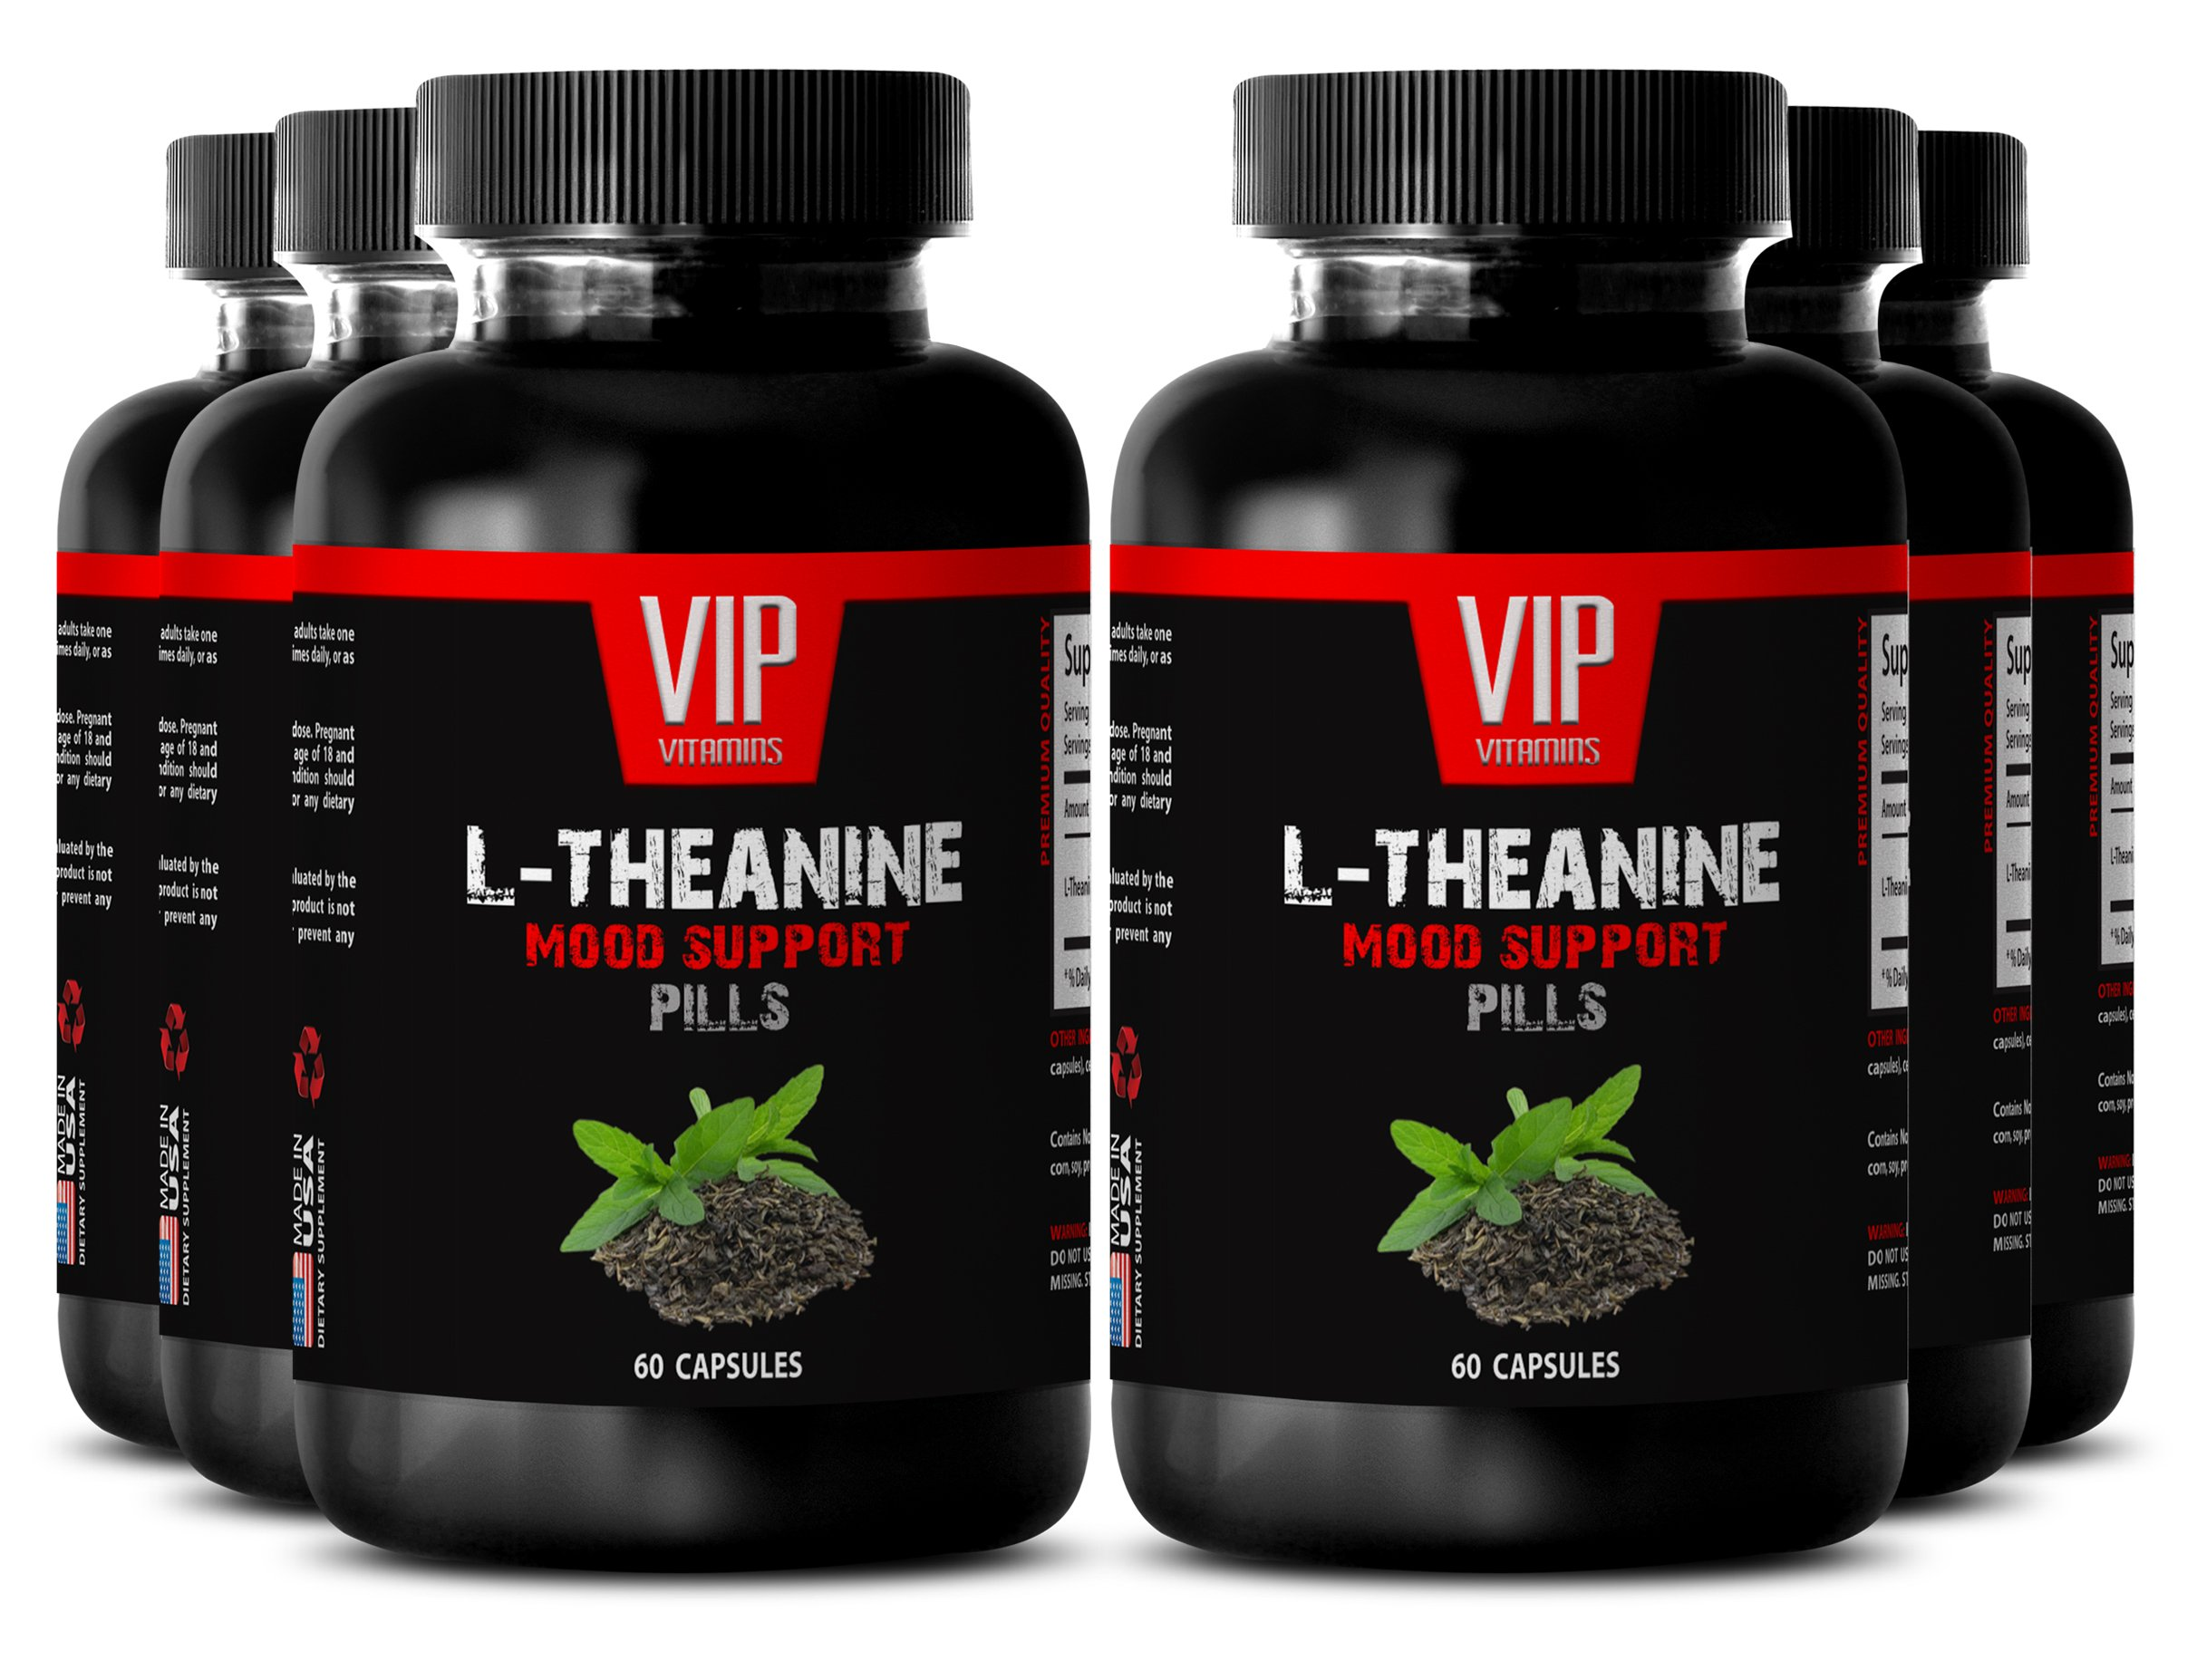 Natural help for anxiety - L-THEANINE MOOD SUPPORT - Anti stress supplement - 6 Bottles 360 capsules